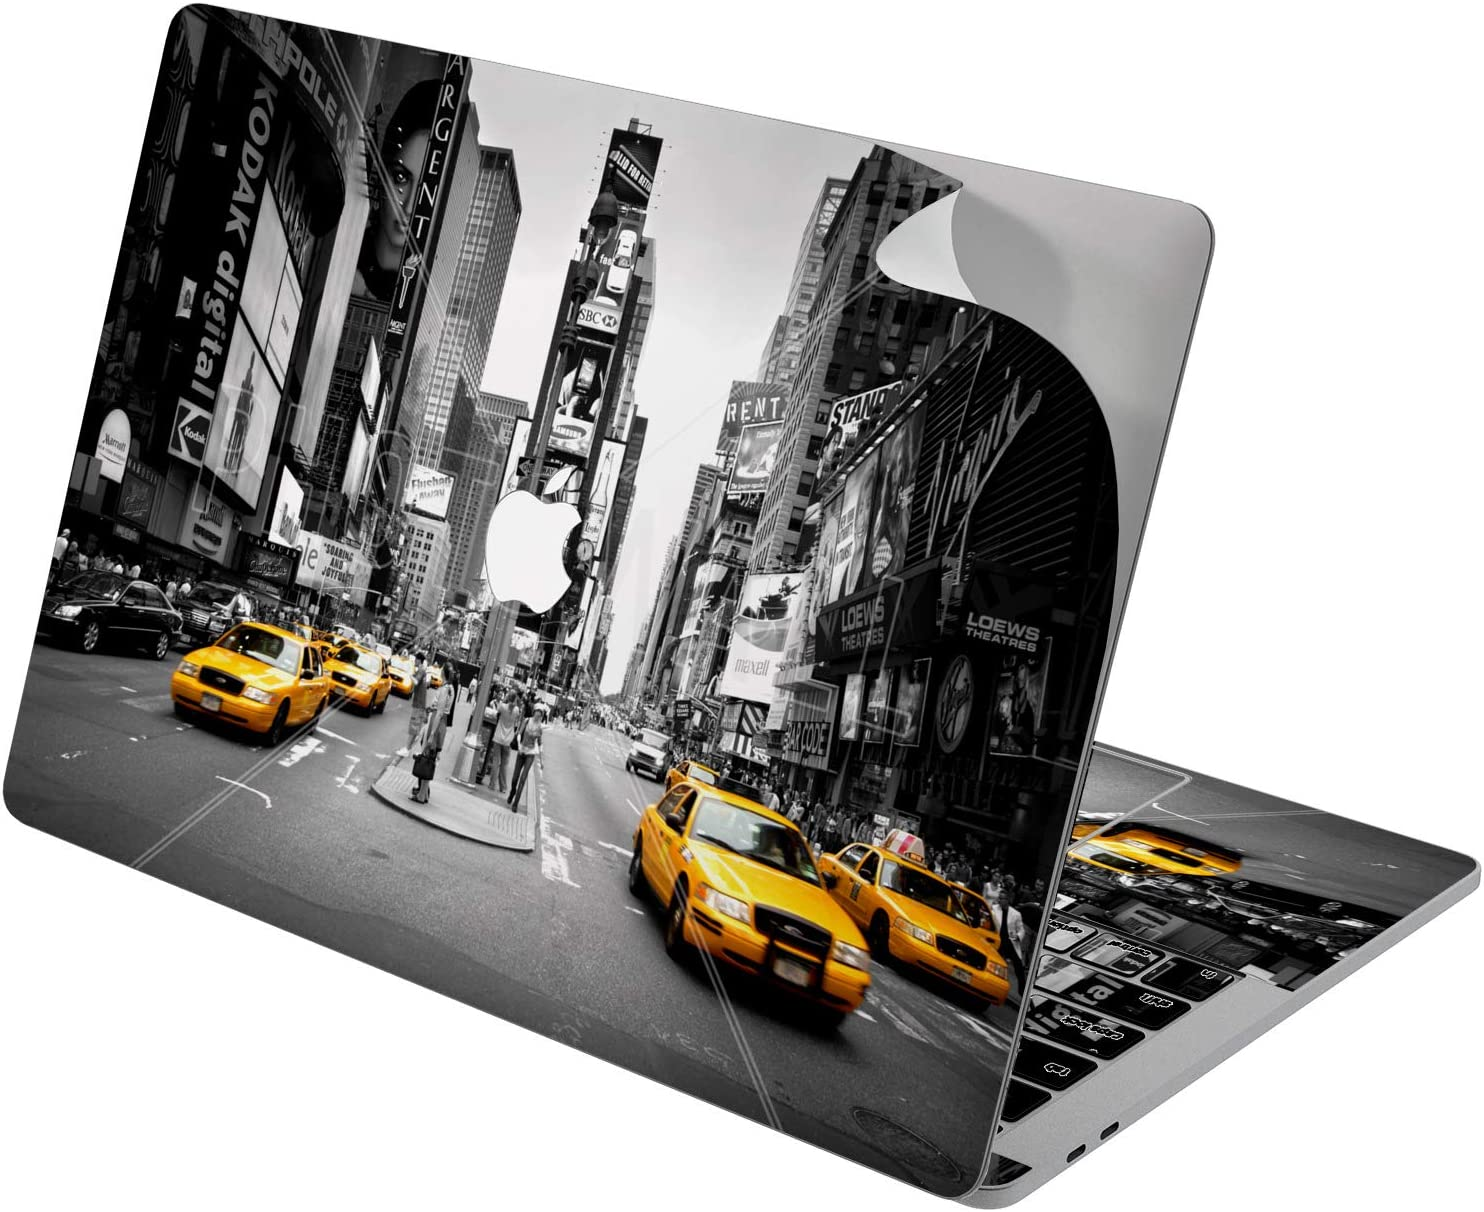 "Cavka Vinyl Decal Skin for Apple MacBook Pro 13"" 2019 15"" 2018 Air 13"" 2020 Retina 2015 Mac 11"" Mac 12"" New York City Print Times Square Street Nightlife Laptop Cover Design Cool Sticker Protective"